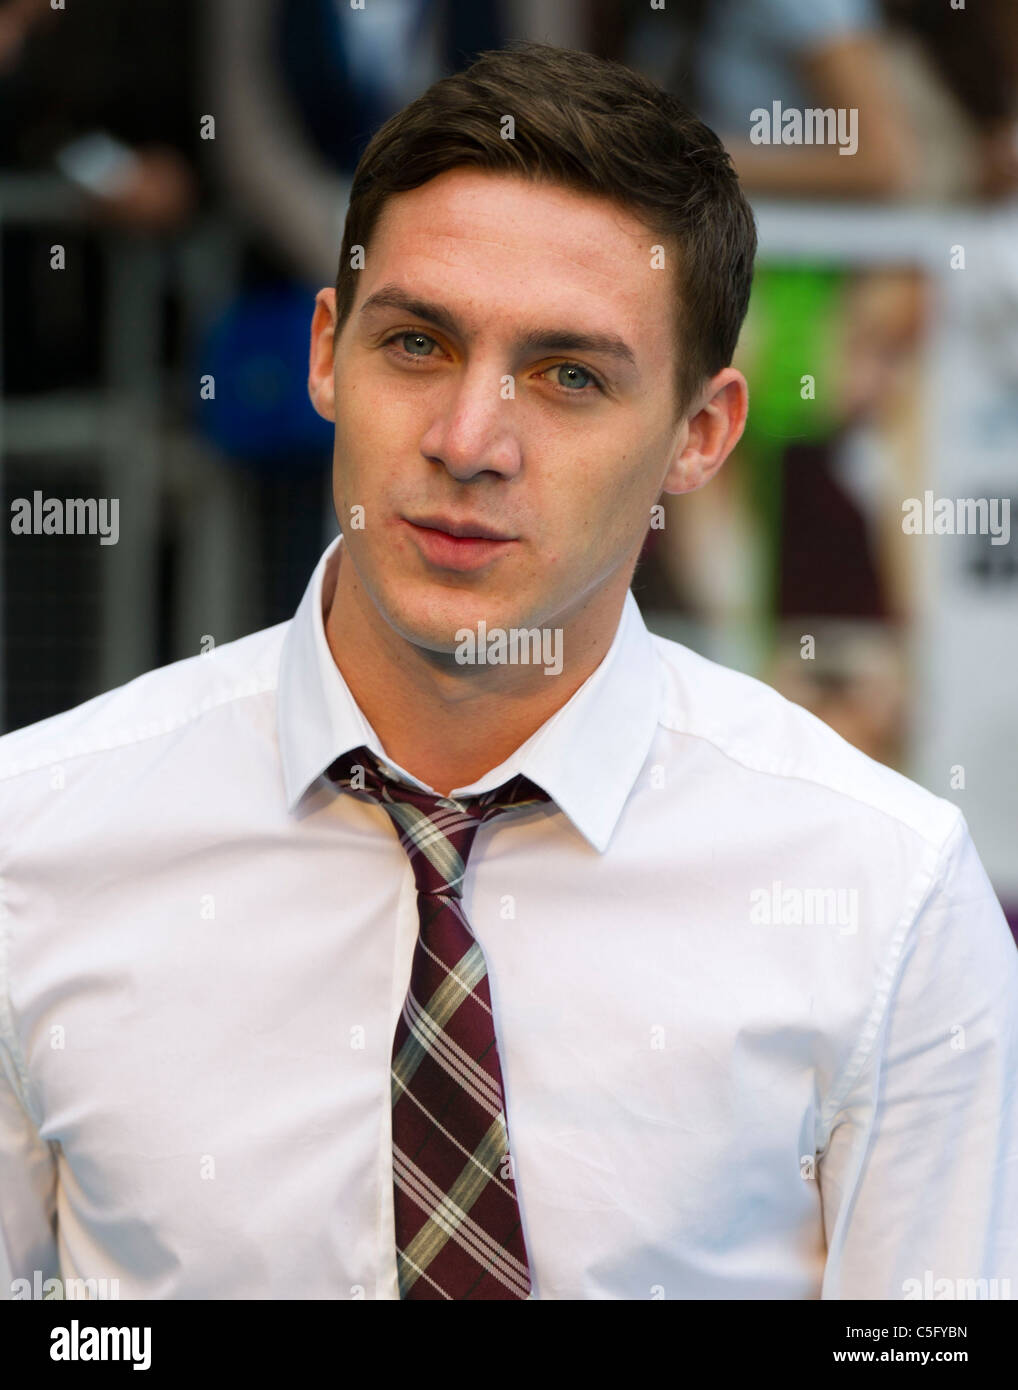 Kirk Norcross attends the UK premiere of 'Horrible Bosses' at BFI Southbank on July 20, 2011 in London, - Stock Image